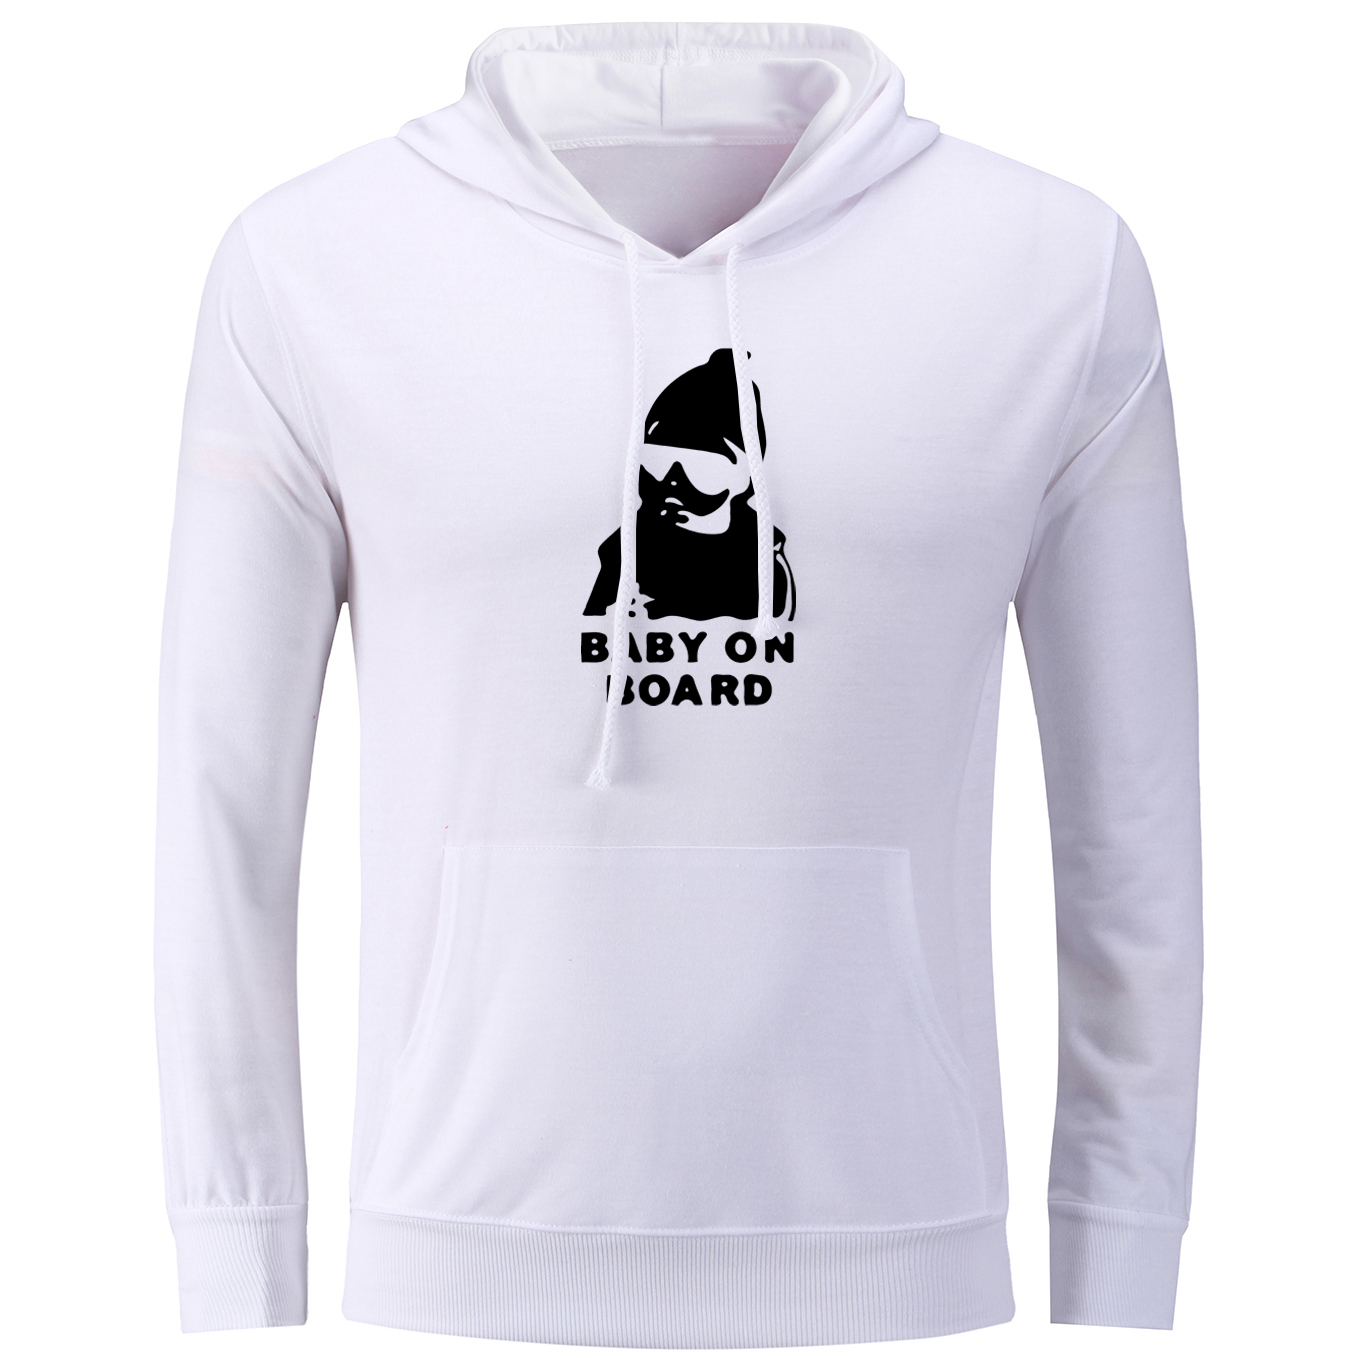 iDzn Fashion Womens Hoodies Carlos from the Hangover Baby on Board Pattern Sweatshirts Female Pullovers Jackets Christmas Gift